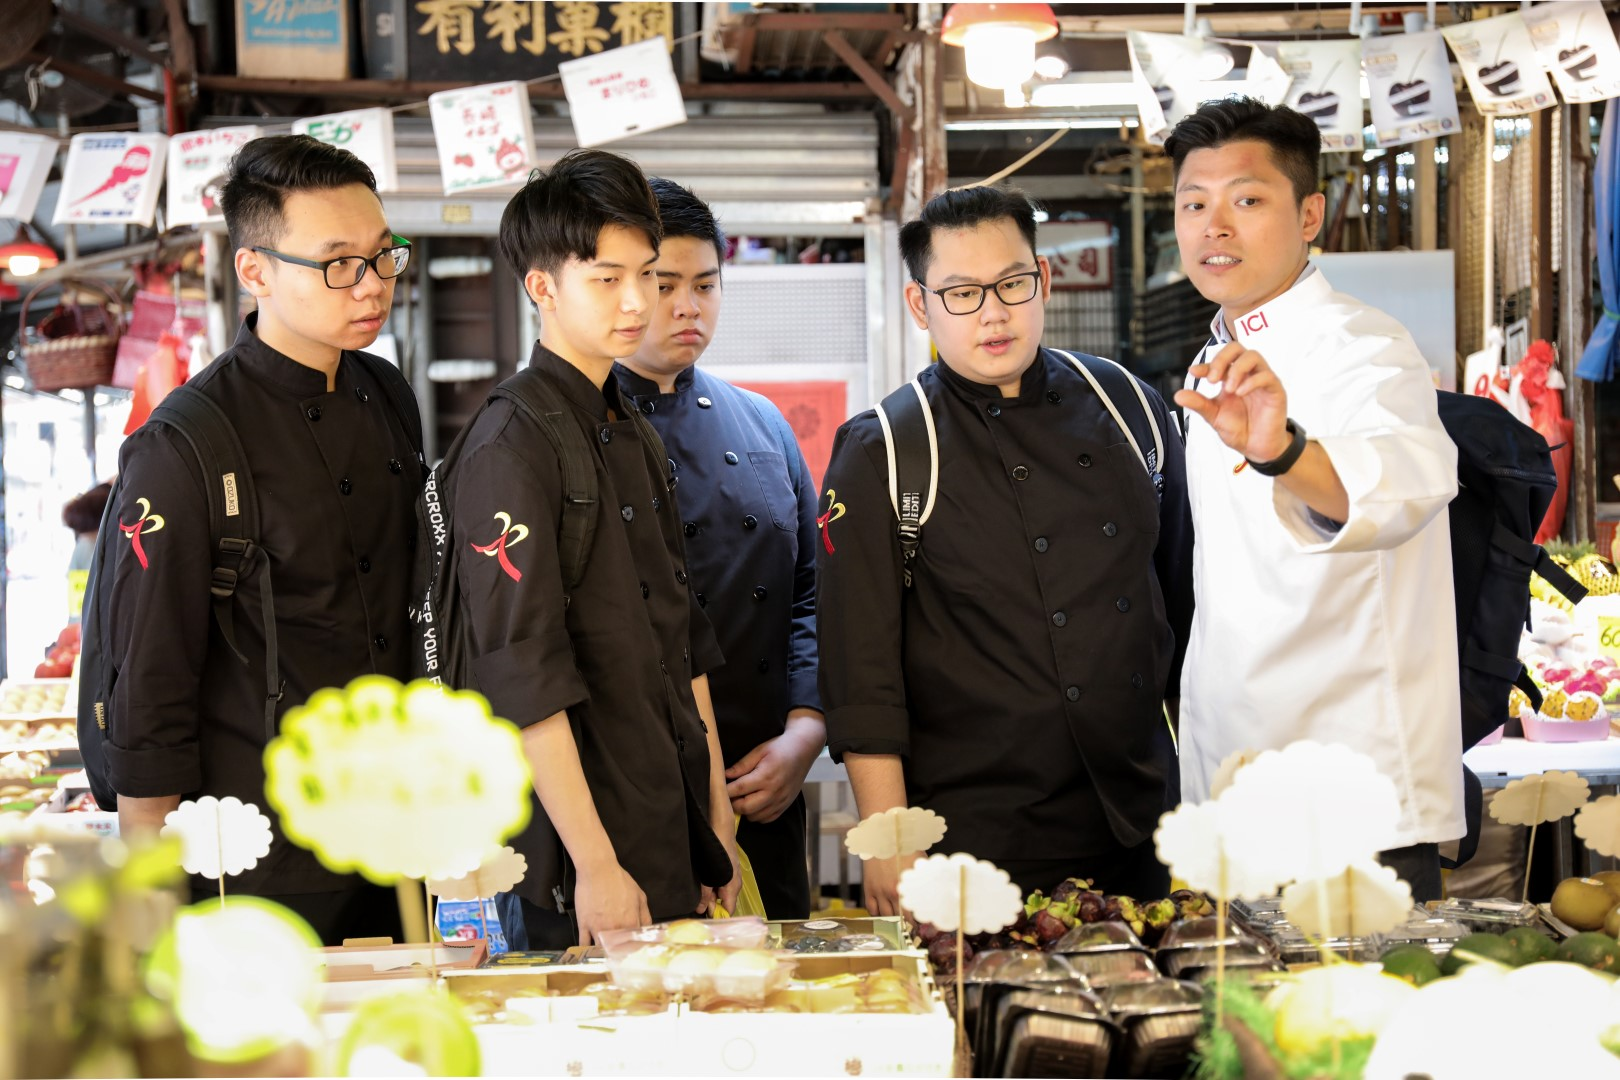 Culinary demonstration and theme dinner by Chef Bosco Li and Ngai Chun Pong